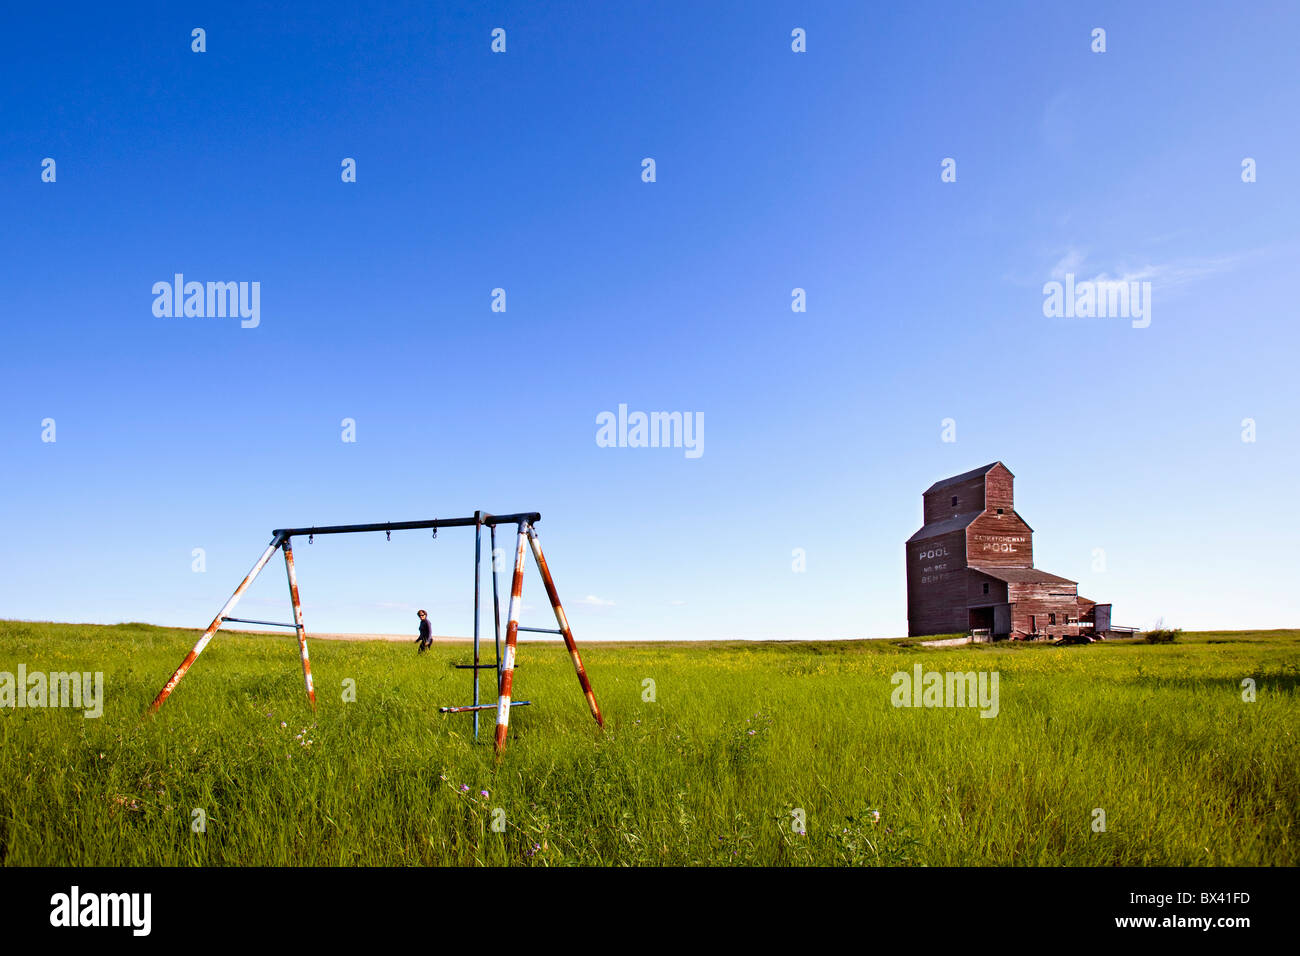 A Man Walking Through A Field With An Old Swing Set And An Old Grain Elevator; Bents, Saskatchewan, Canada - Stock Image